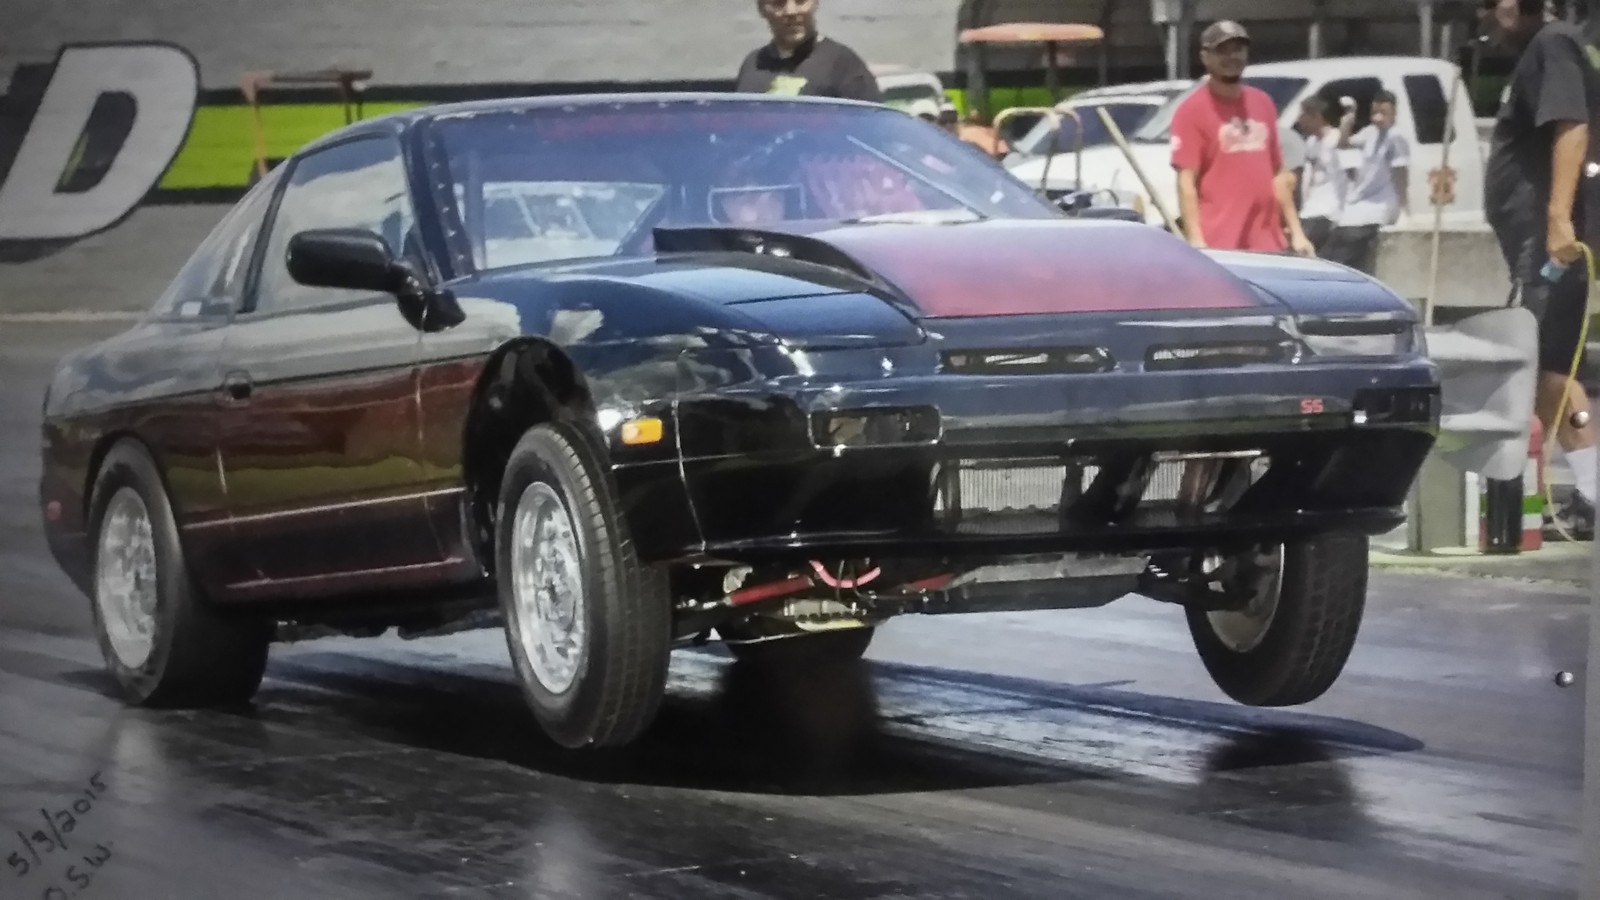 1989 Nissan 240sx Hatch 1 4 Mile Drag Racing Timeslip Specs 0 60